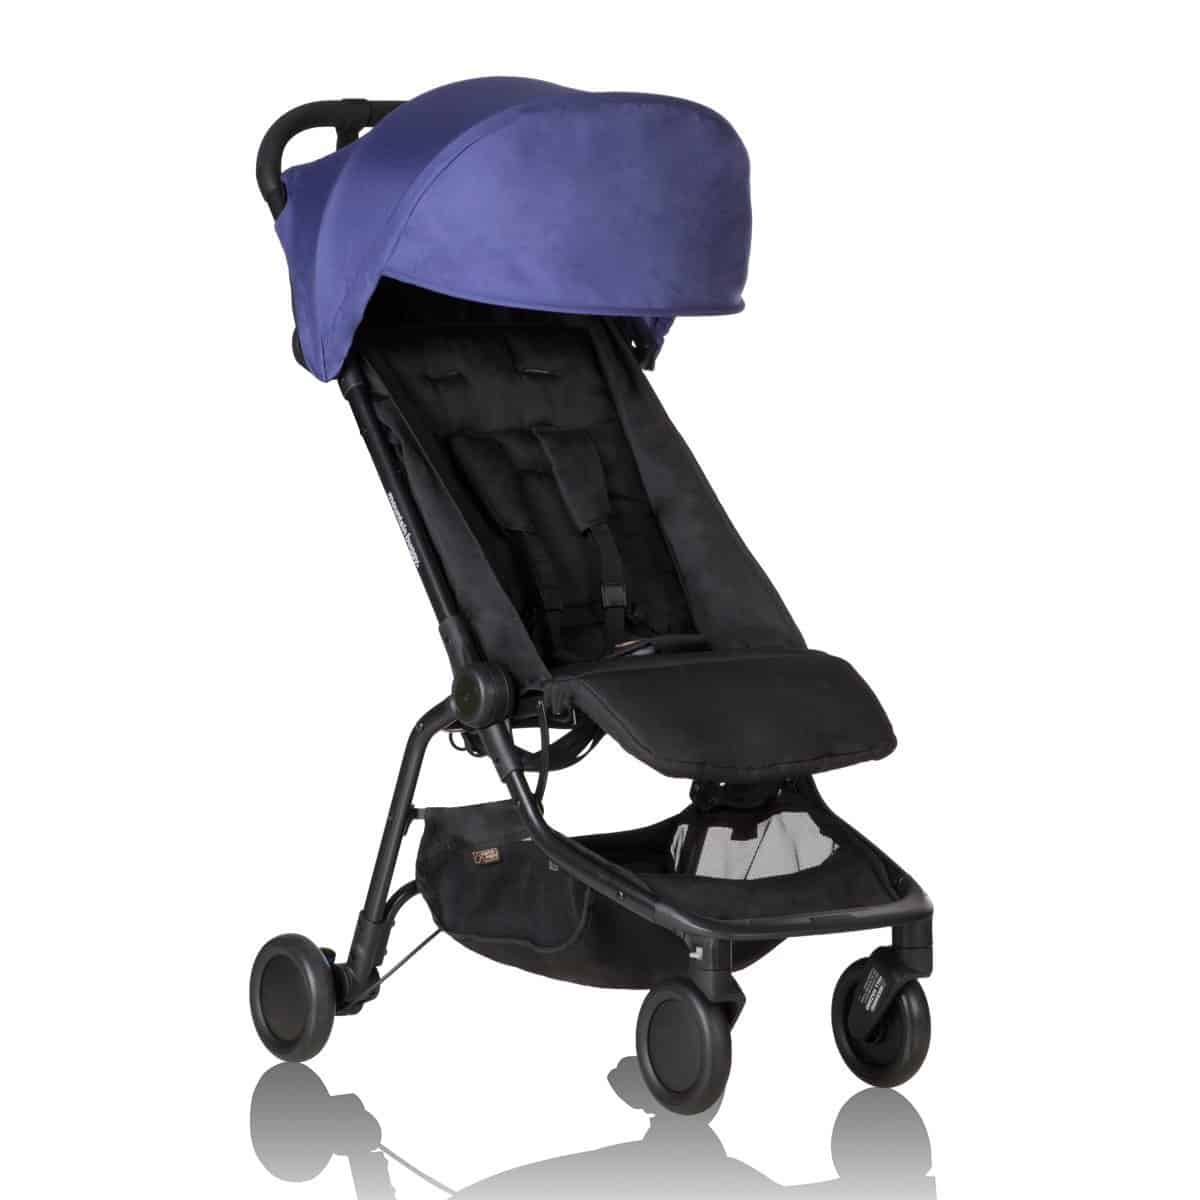 Top Lightweight Travel System Strollers The 10 Best Lightweight Strollers To Buy 2019 Littleonemag